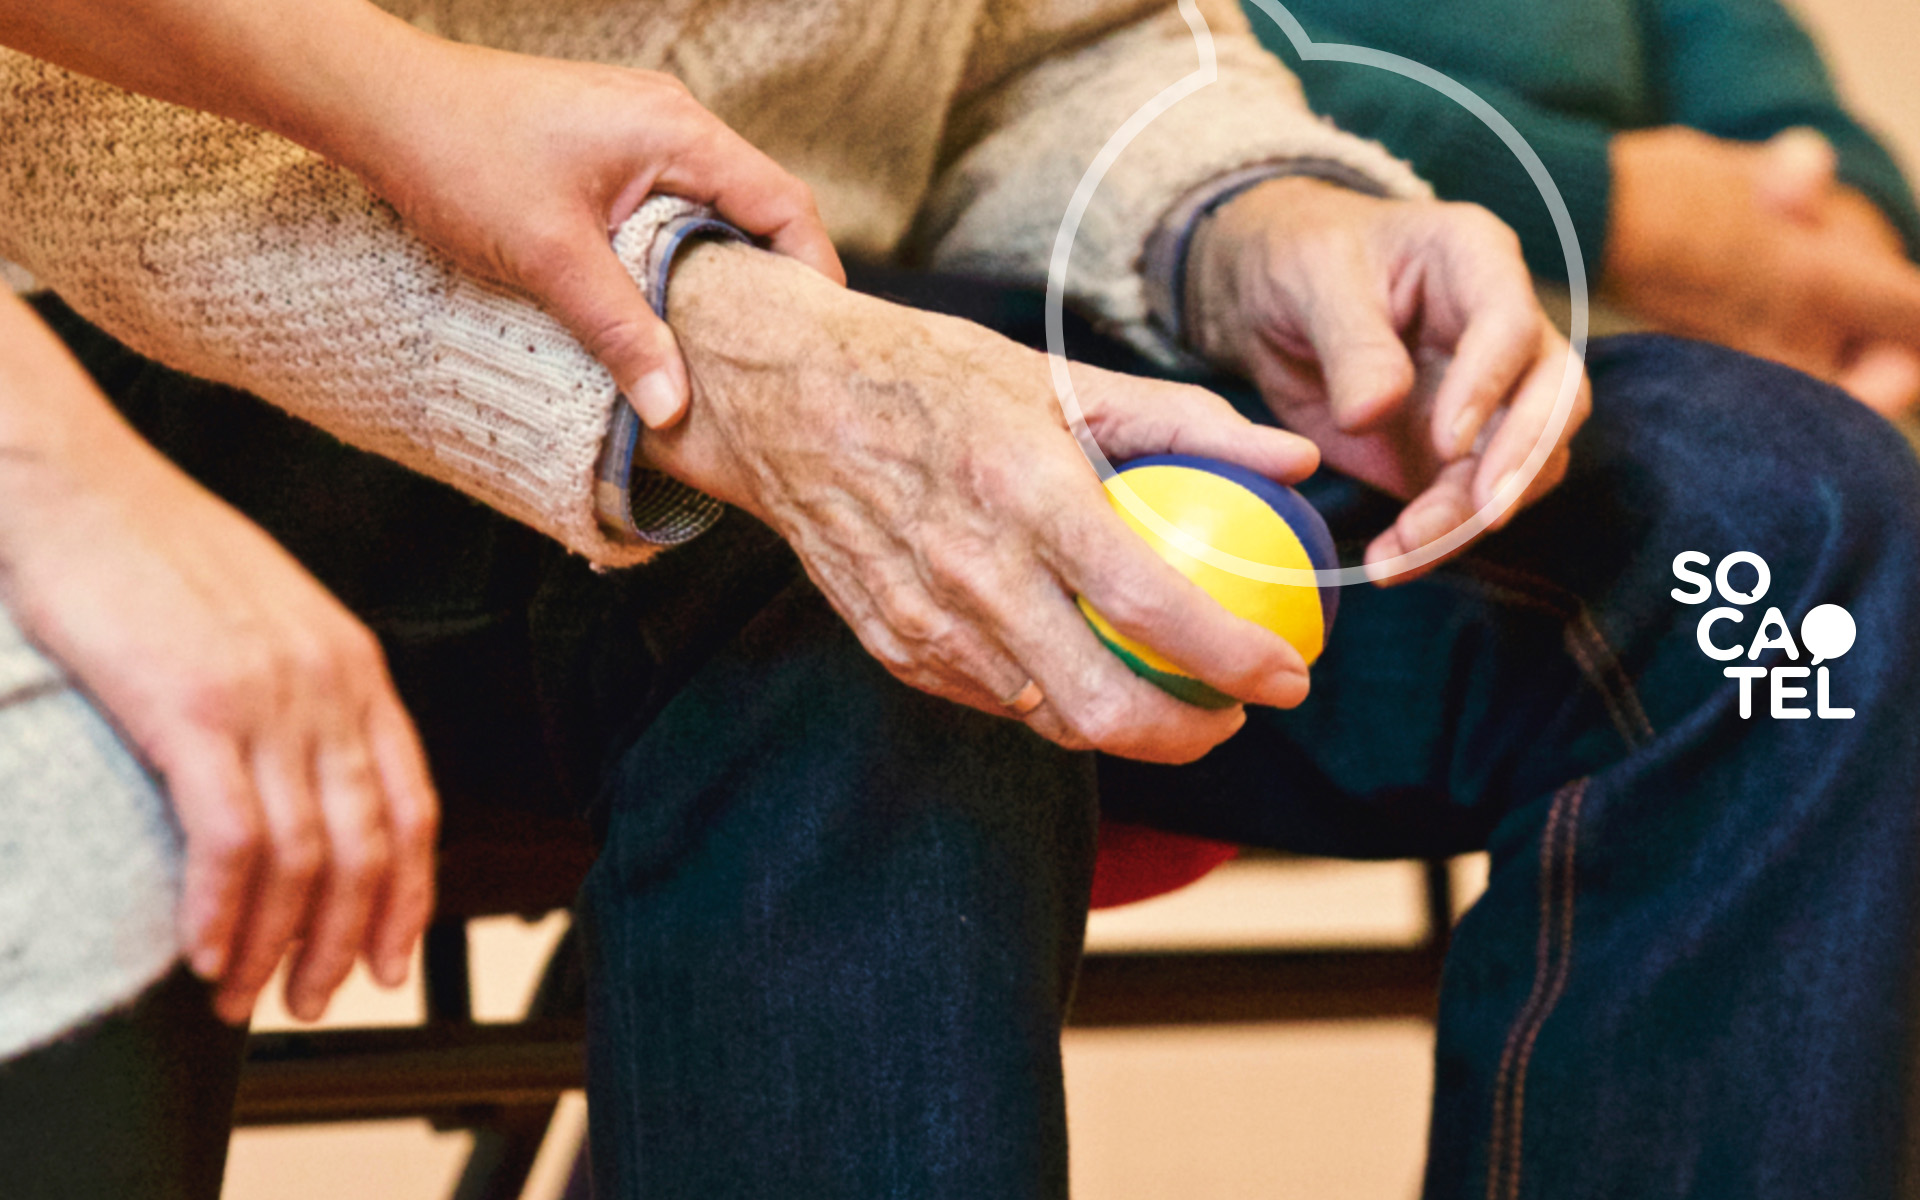 Improving long-term care services